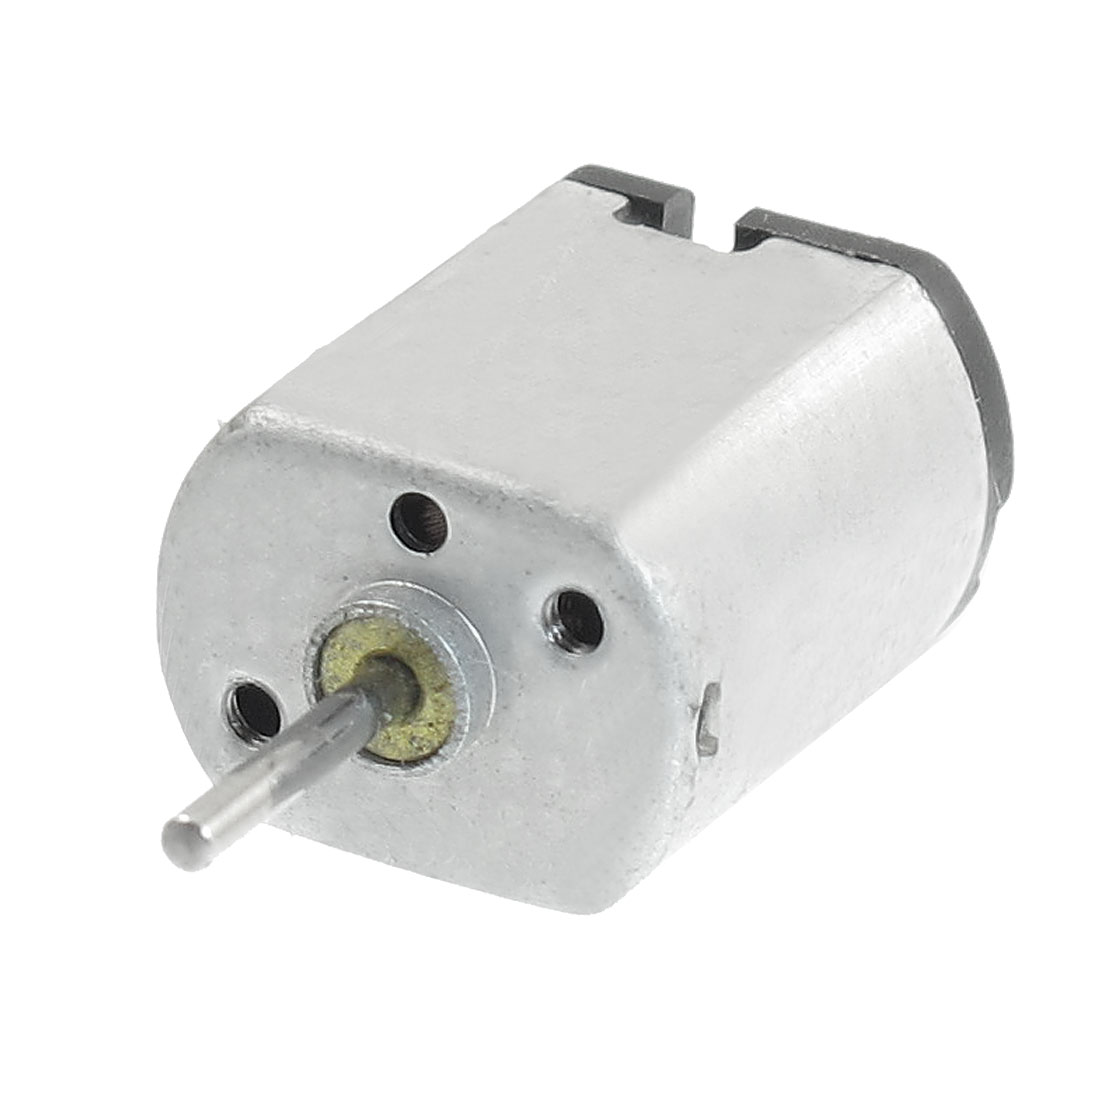 7200-15000RPM 3-6V High Torque Electric Mini DC Motor